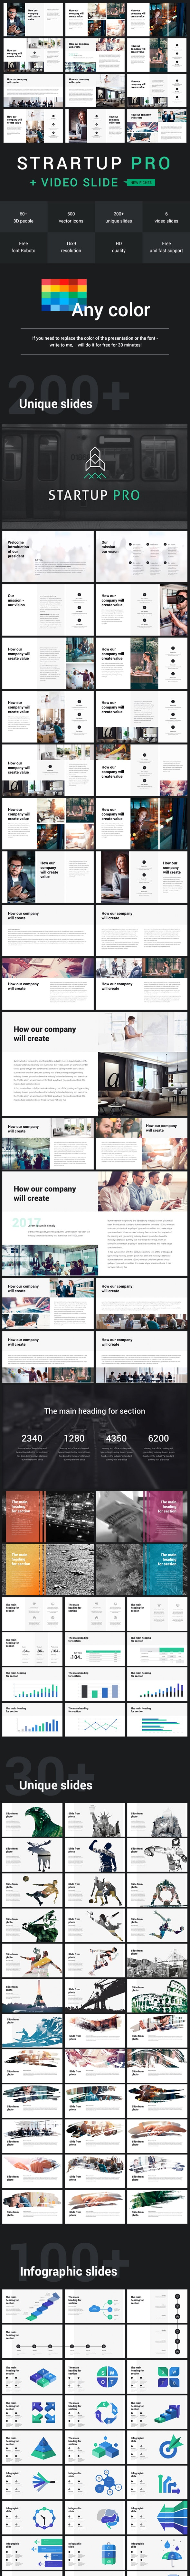 Startup Pro + Video Powerpoint Template - Business PowerPoint Templates